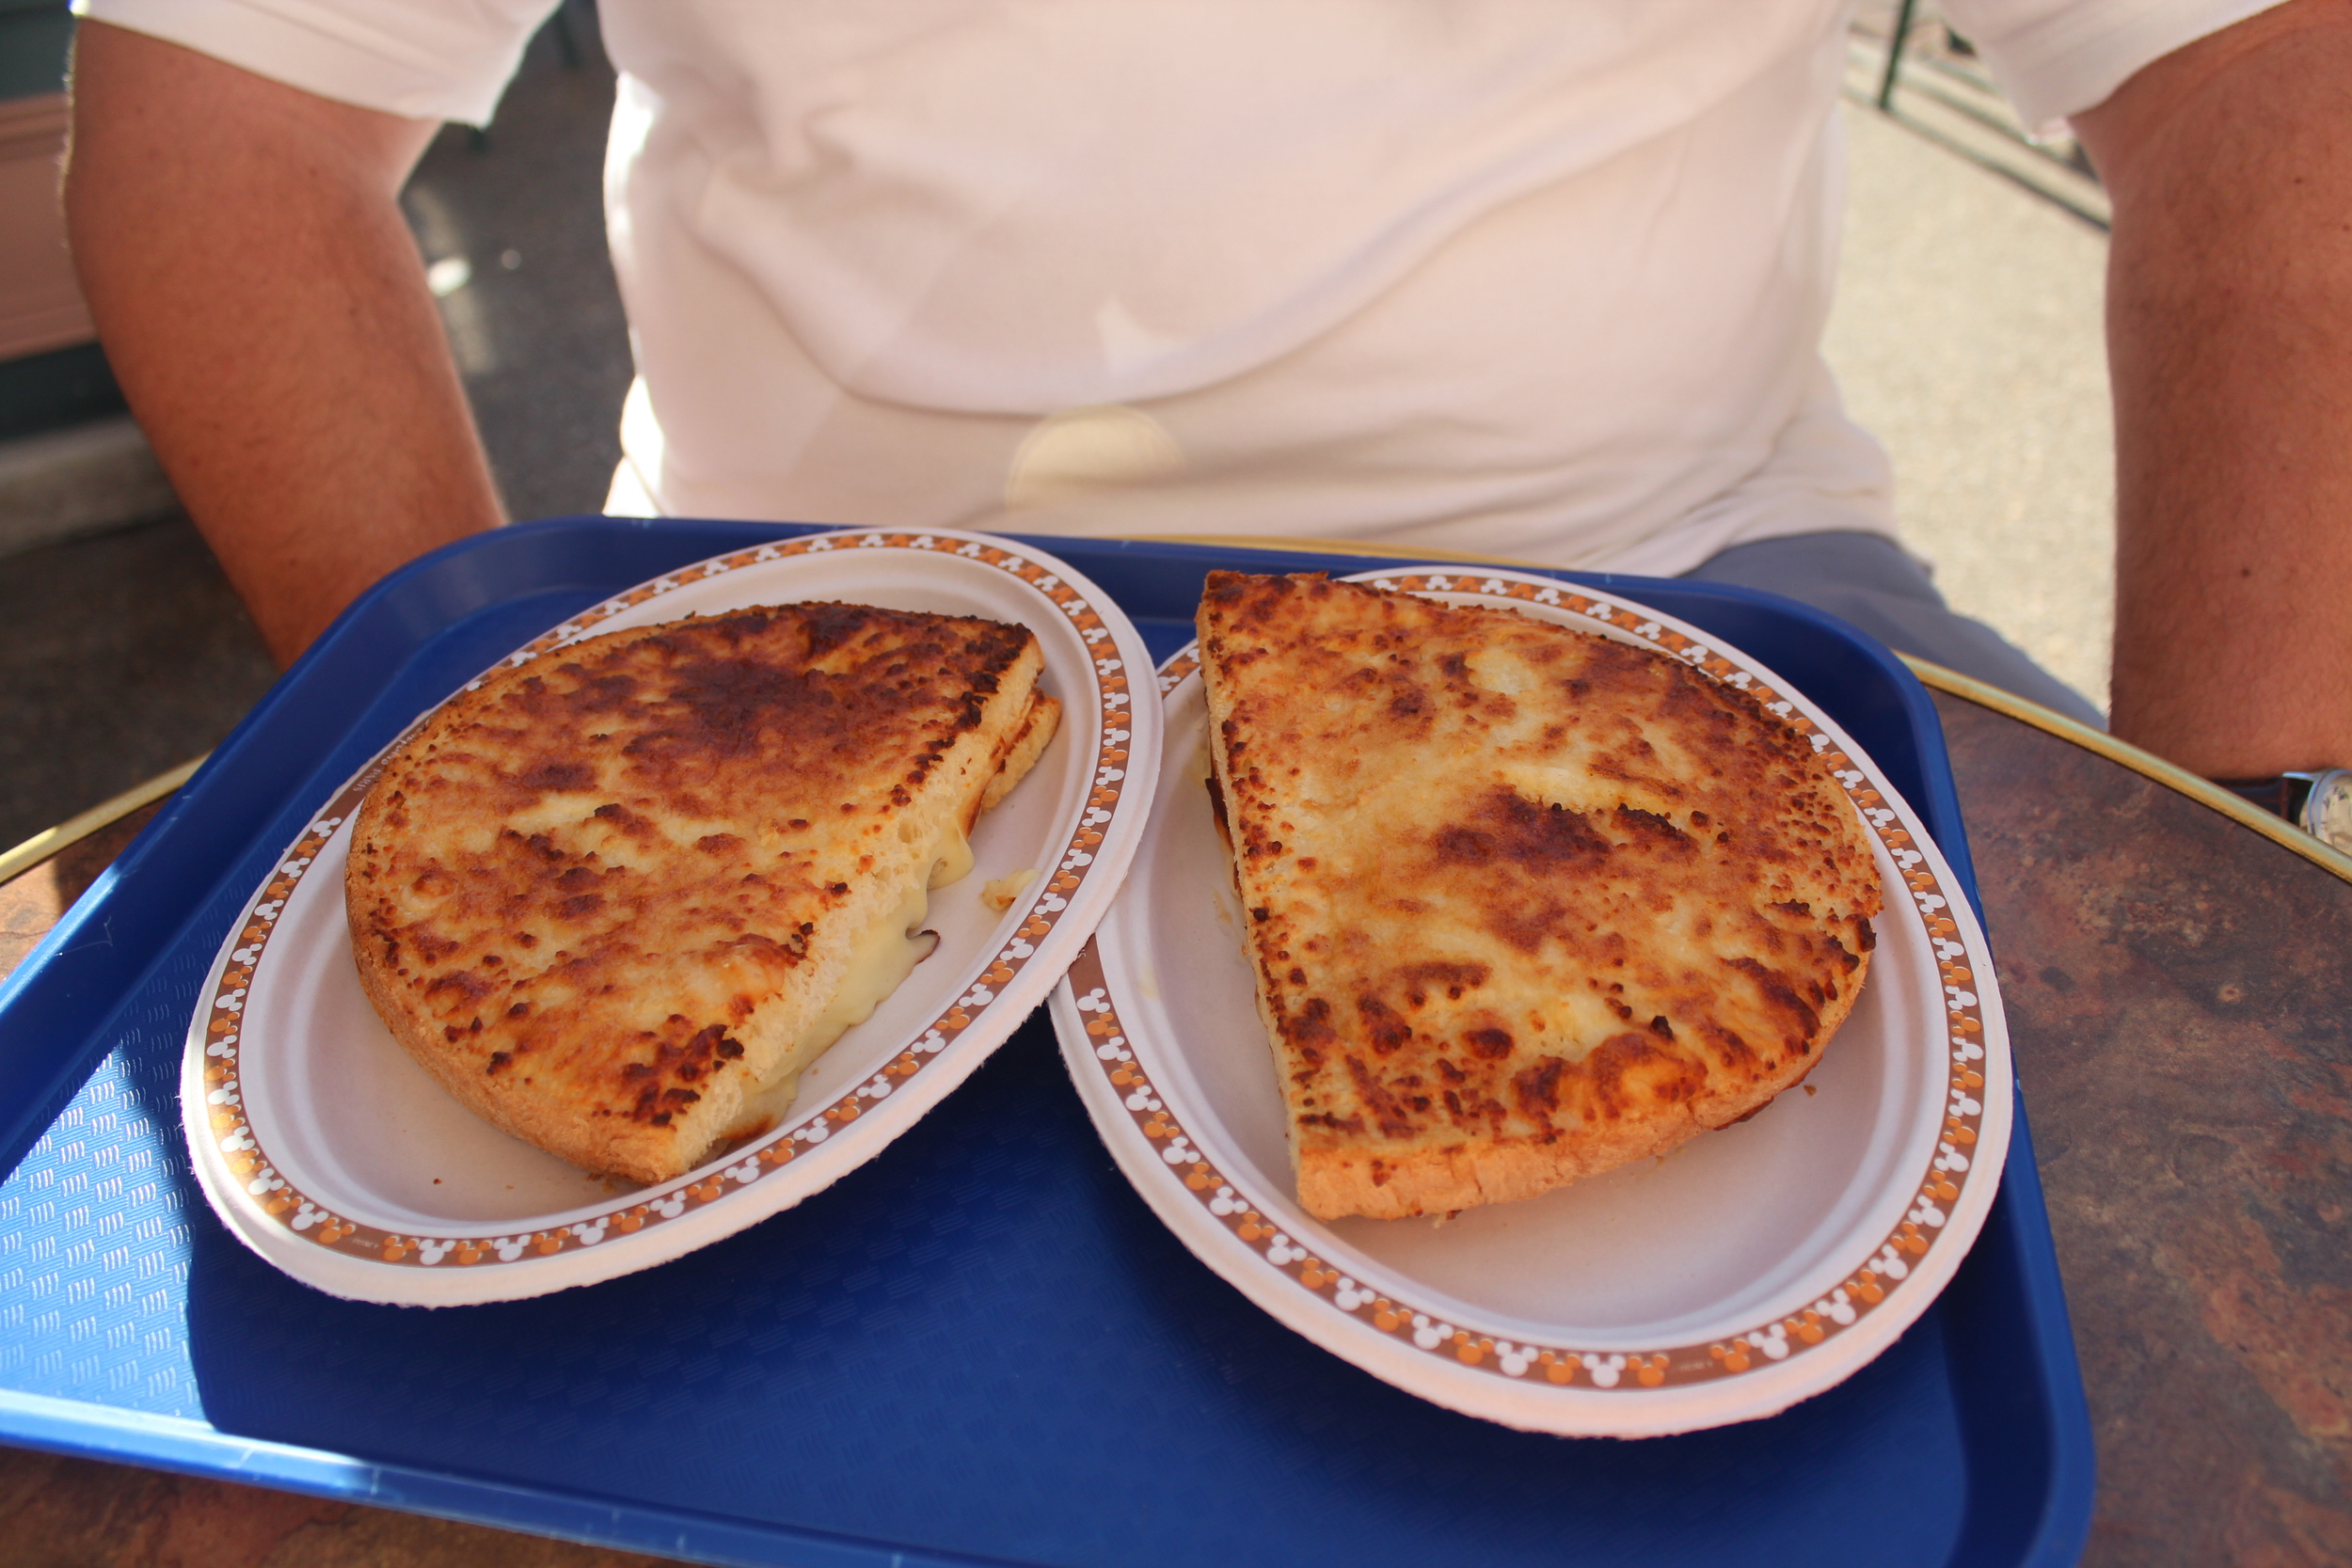 Disneyland Croque Monsieur